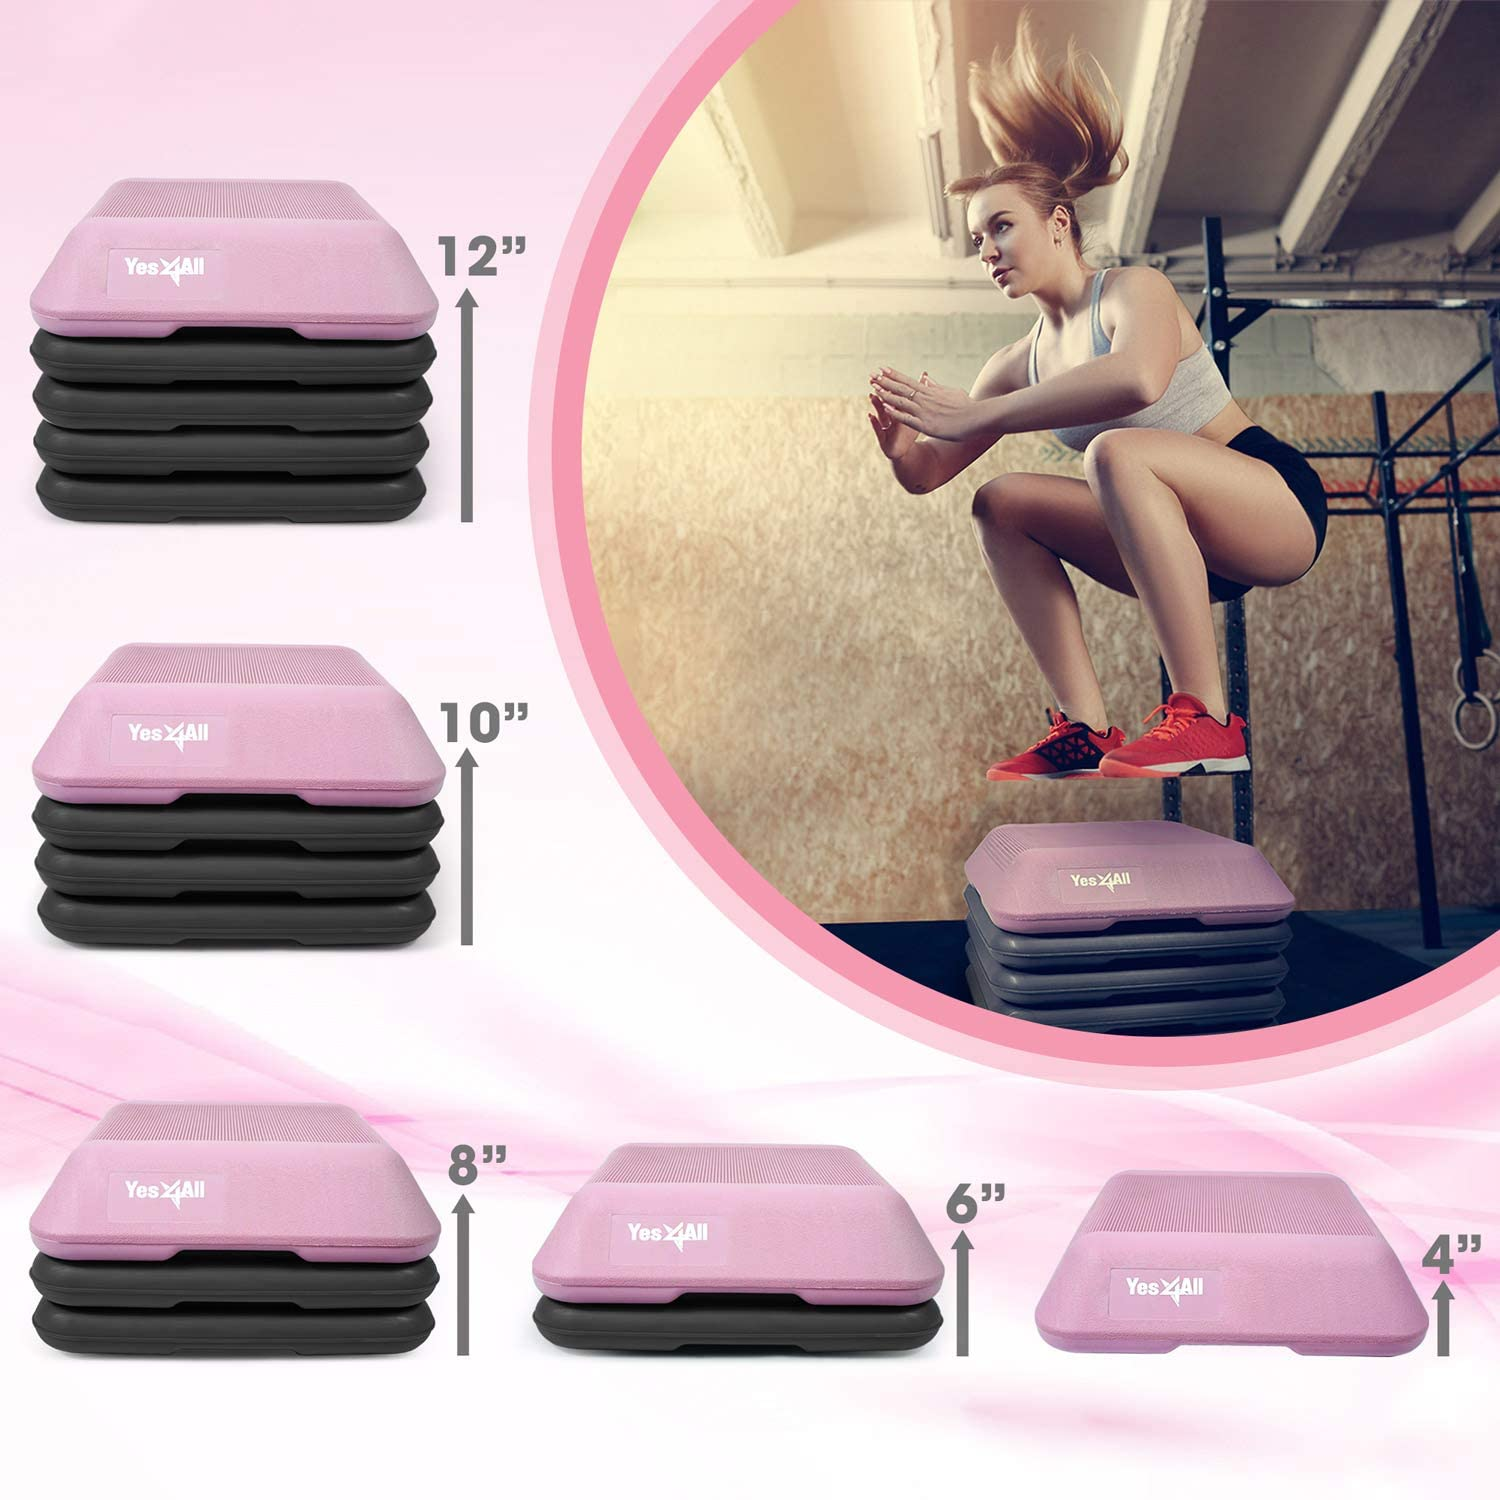 Yes4All 16 x 16 Adjustable High Step Aerobic Platform with 4 Risers